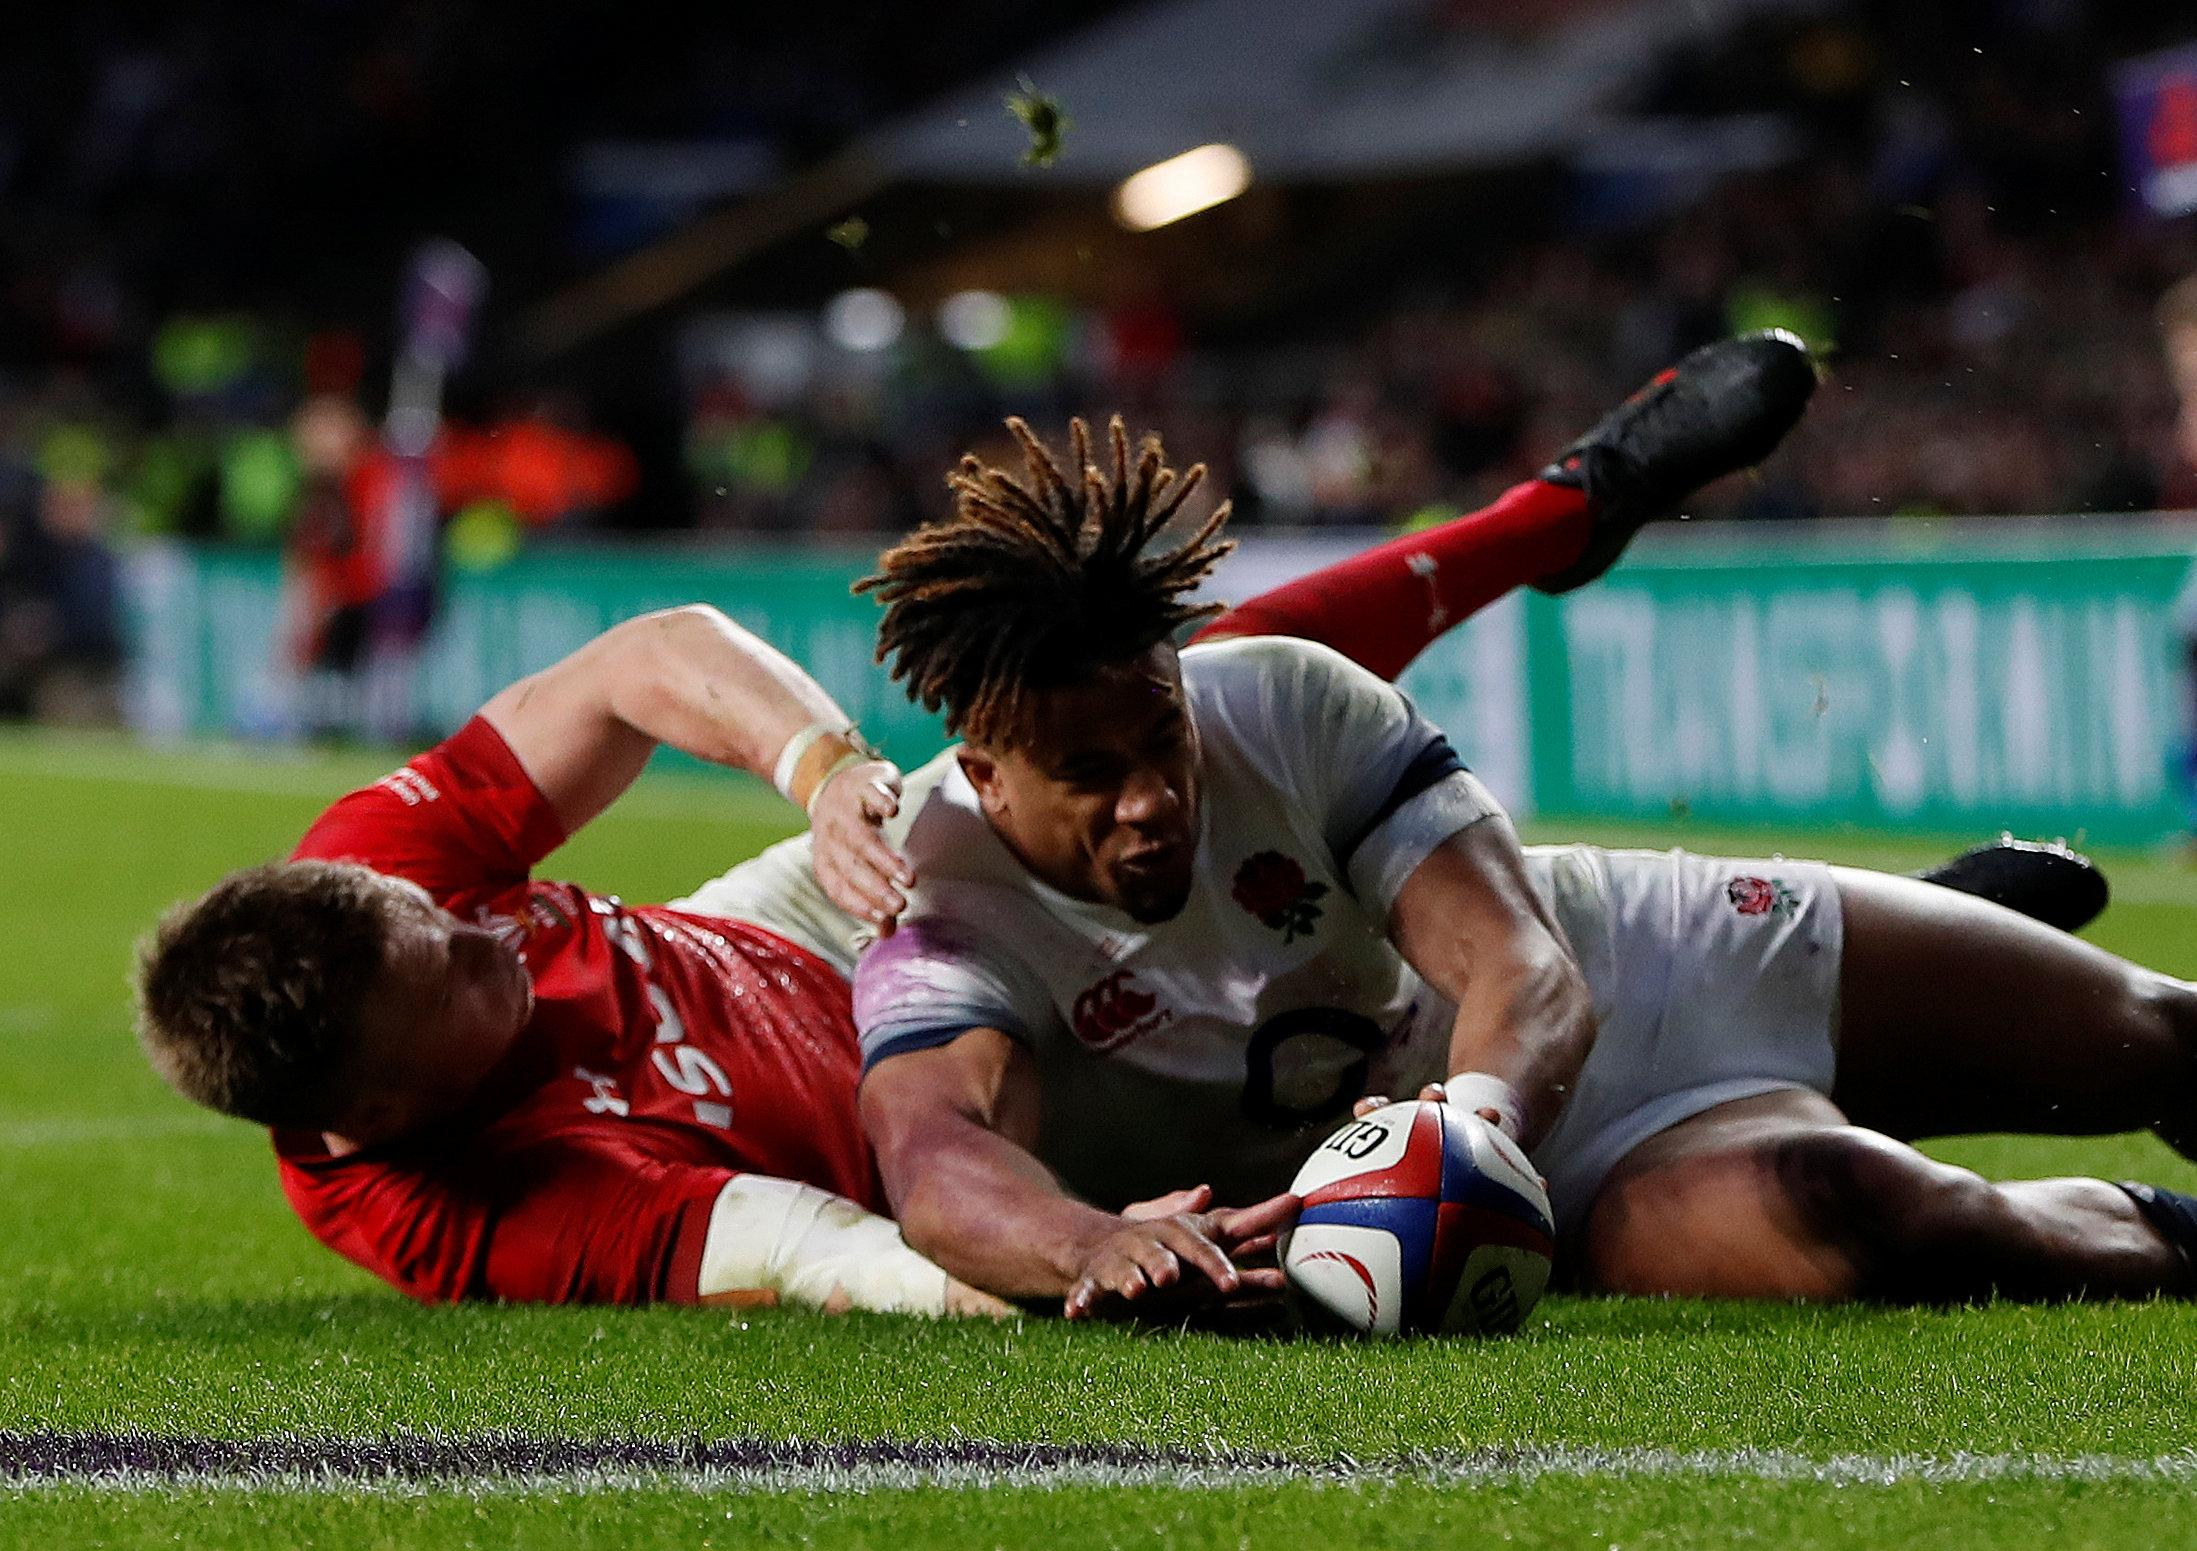 Gareth Anscombe reached the ball ahead of Anthony Watson but Wales were denied a try